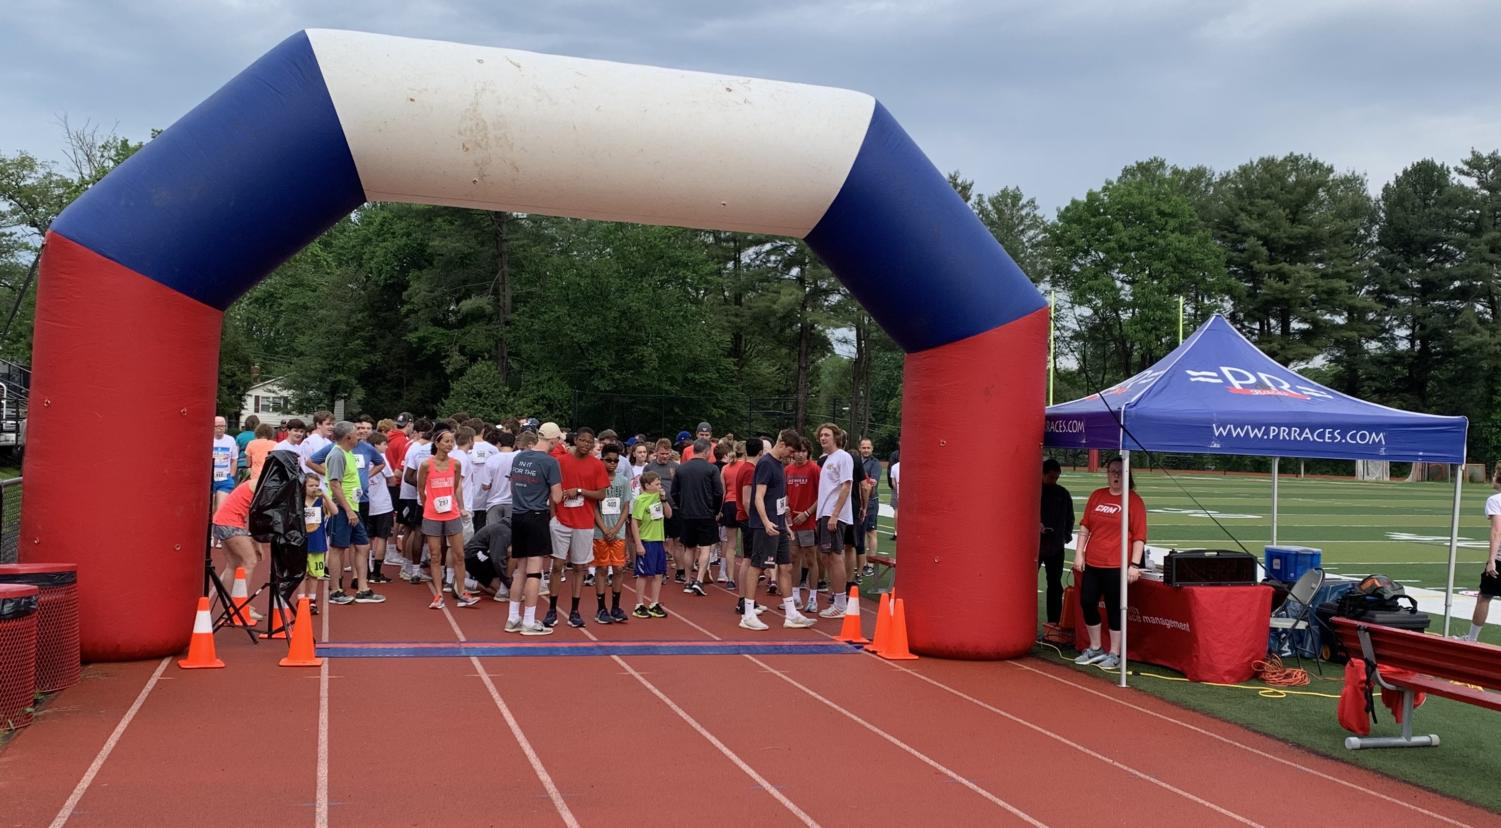 Many members of the McLean community came to run the 5k last saturday morning. (Photo courtesy of Tzeitel Barcus).